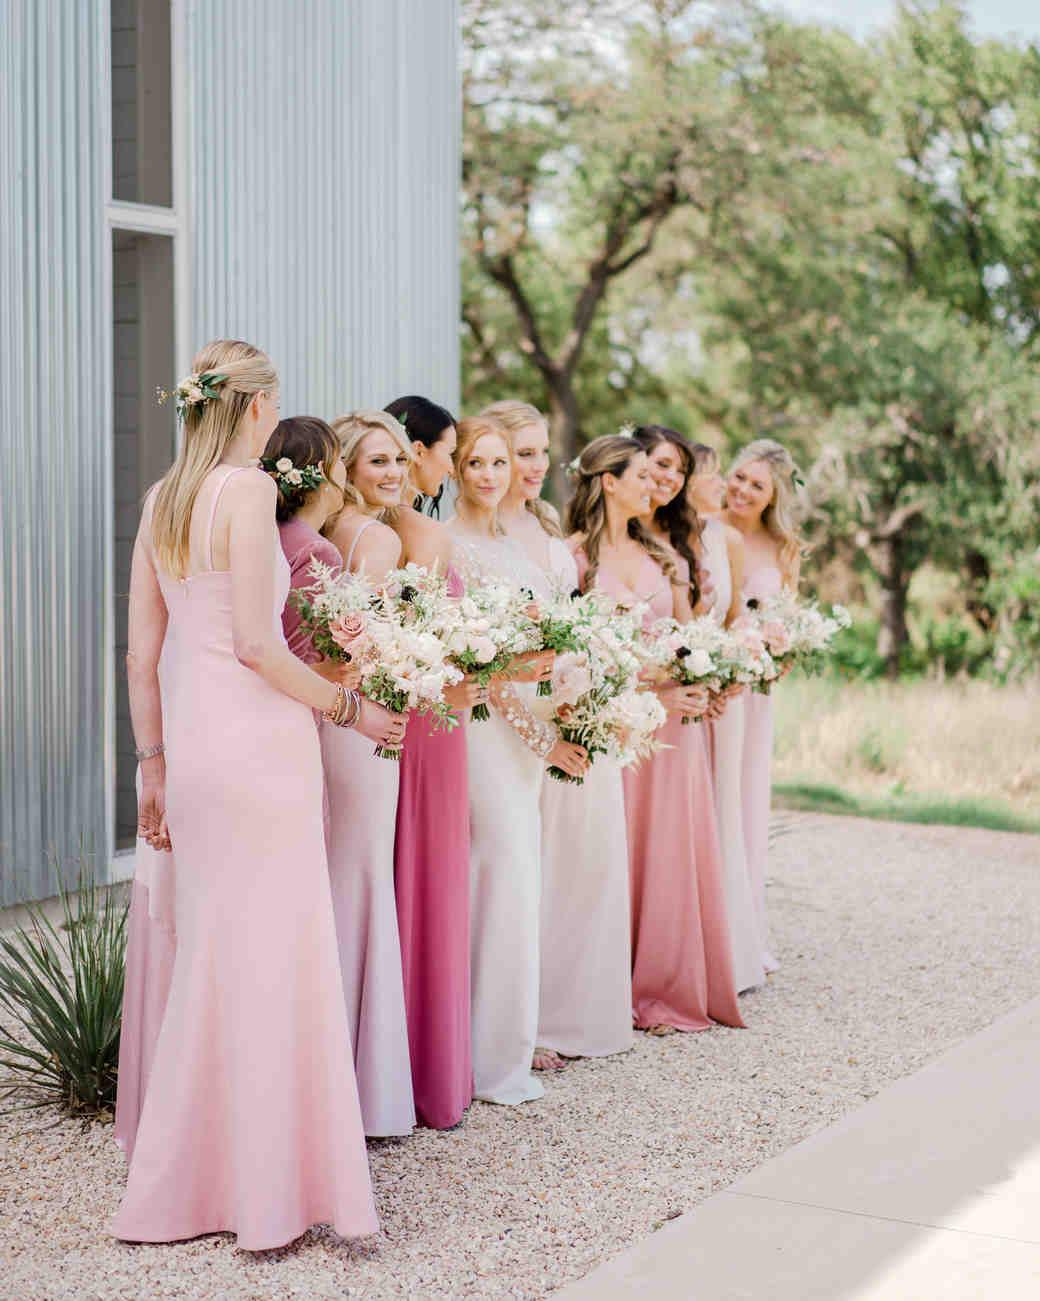 brittany peter wedding bridesmaids in pink dresses